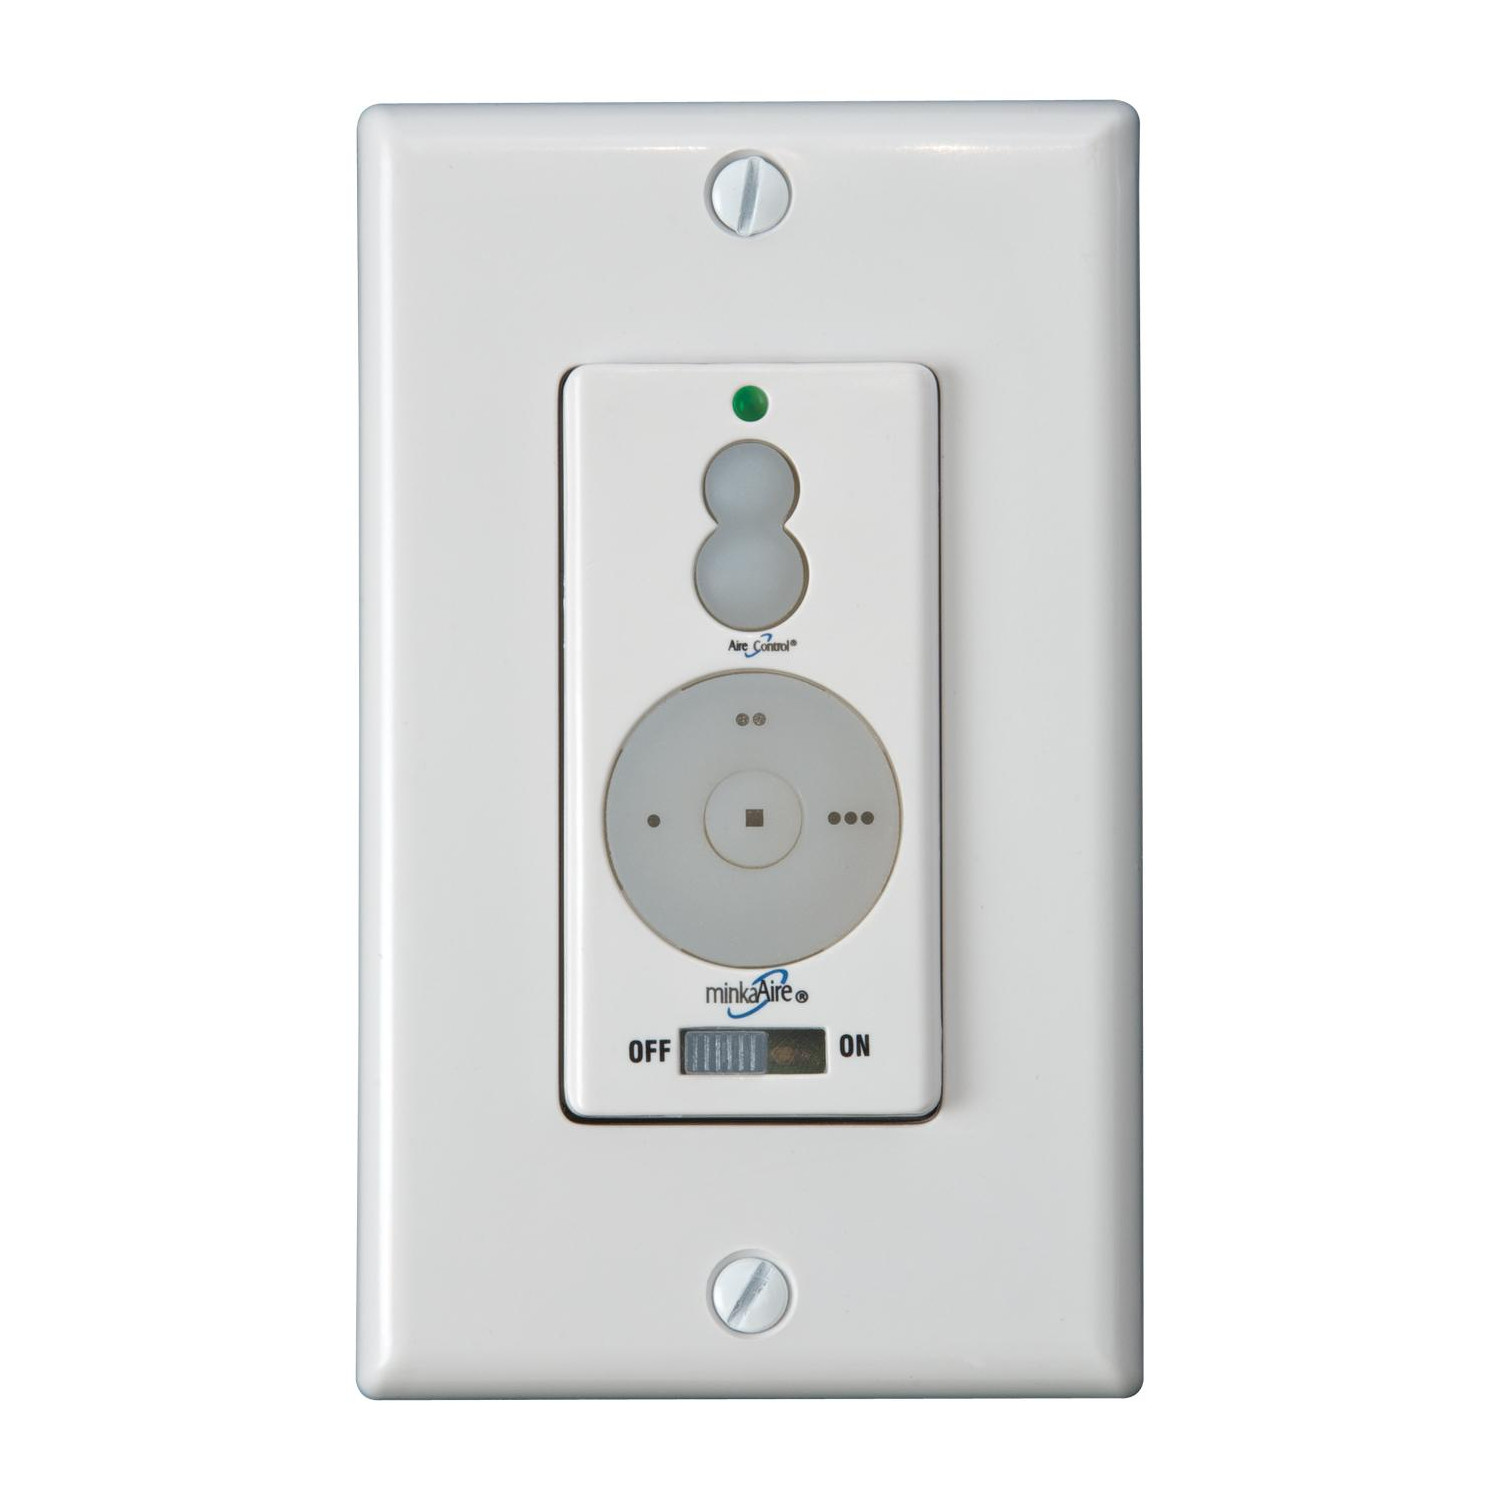 Wall Mounted 3 Speed Fan Control by Minka Aire